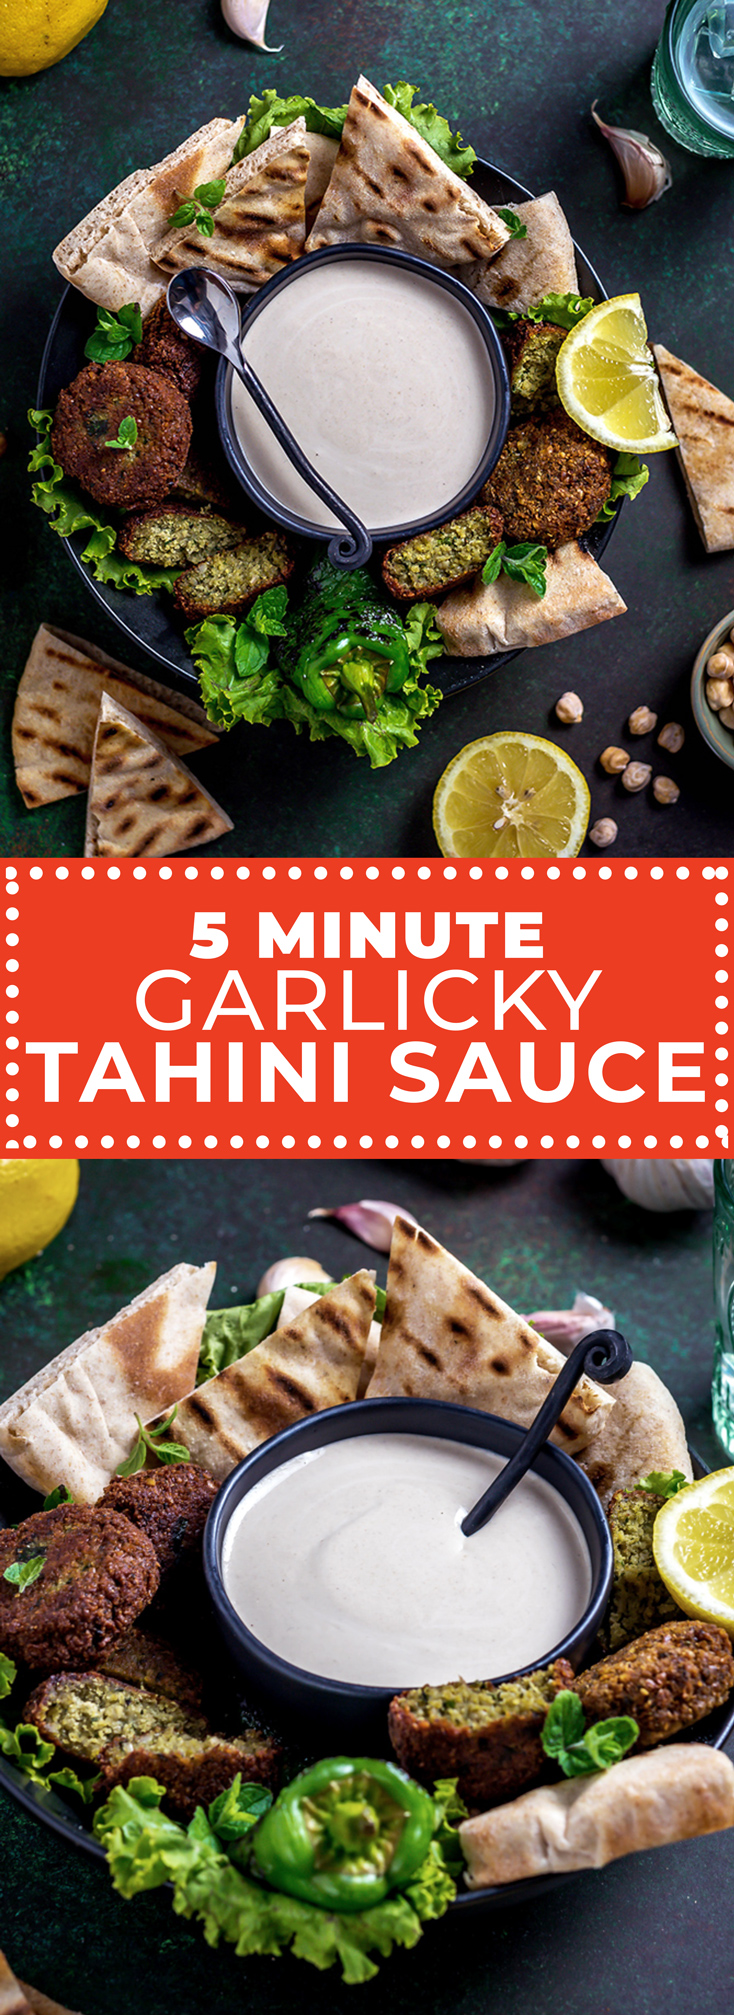 5 Minute Garlicky Tahini Sauce is a traditional Middle Eastern sesame seed based sauce that's tangy, nutty, creamy, and silky smooth without any help from dairy. The secret that makes this recipe the best (and easiest)? Blending a whole, unpeeled head of garlic with fresh lemon juice. It sounds weird, but if you read on you'll understand why!   hostthetoast.com